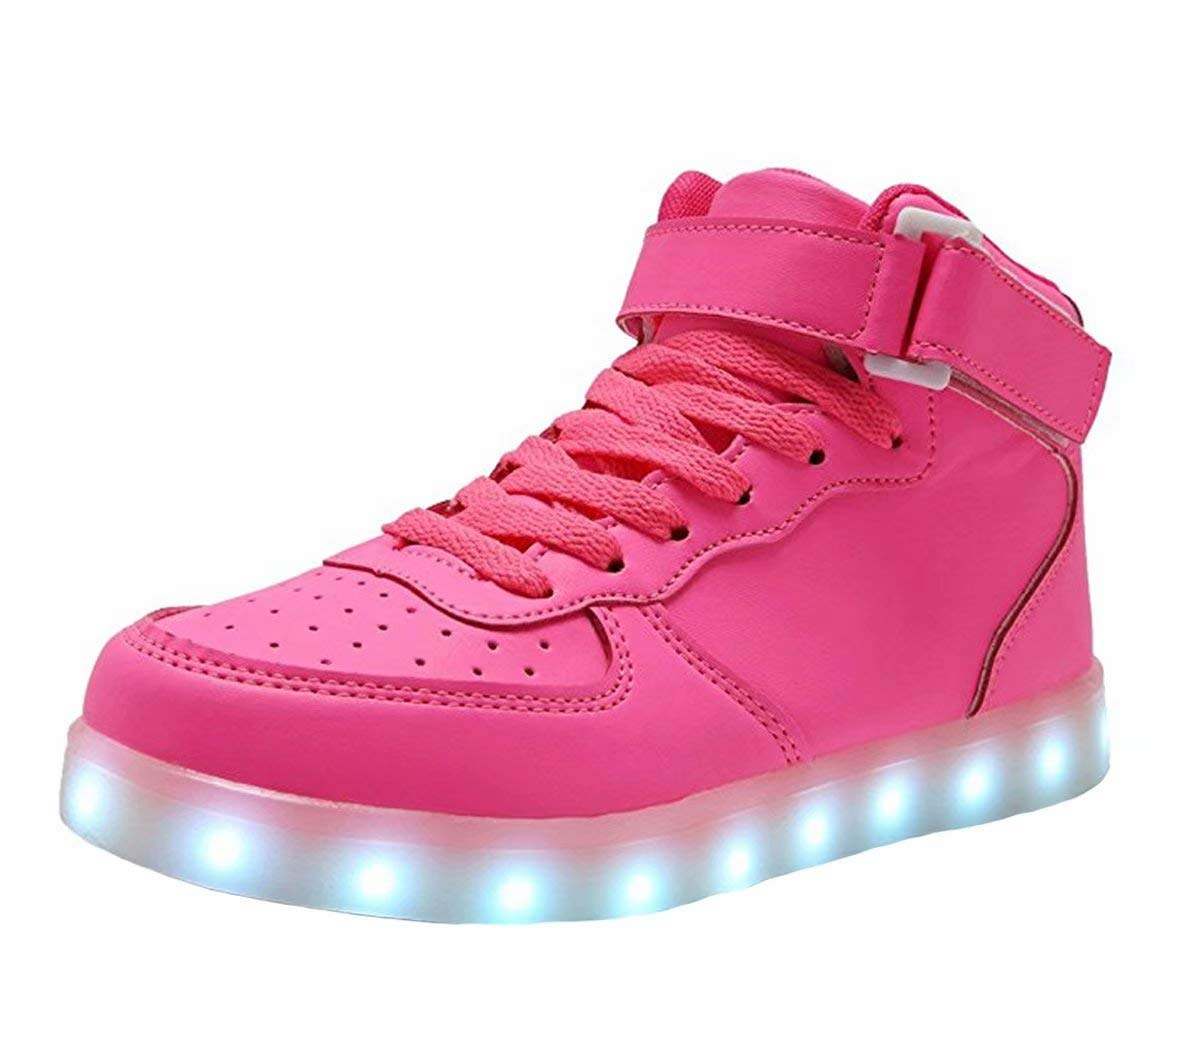 High Top Velcro LED Light Up Shoes 7 Colors USB Flashing Rechargeable Walking Sneakers For Kids Boots With Remote Control(Toddler/Little Kids/Big Kids)-34(pink)